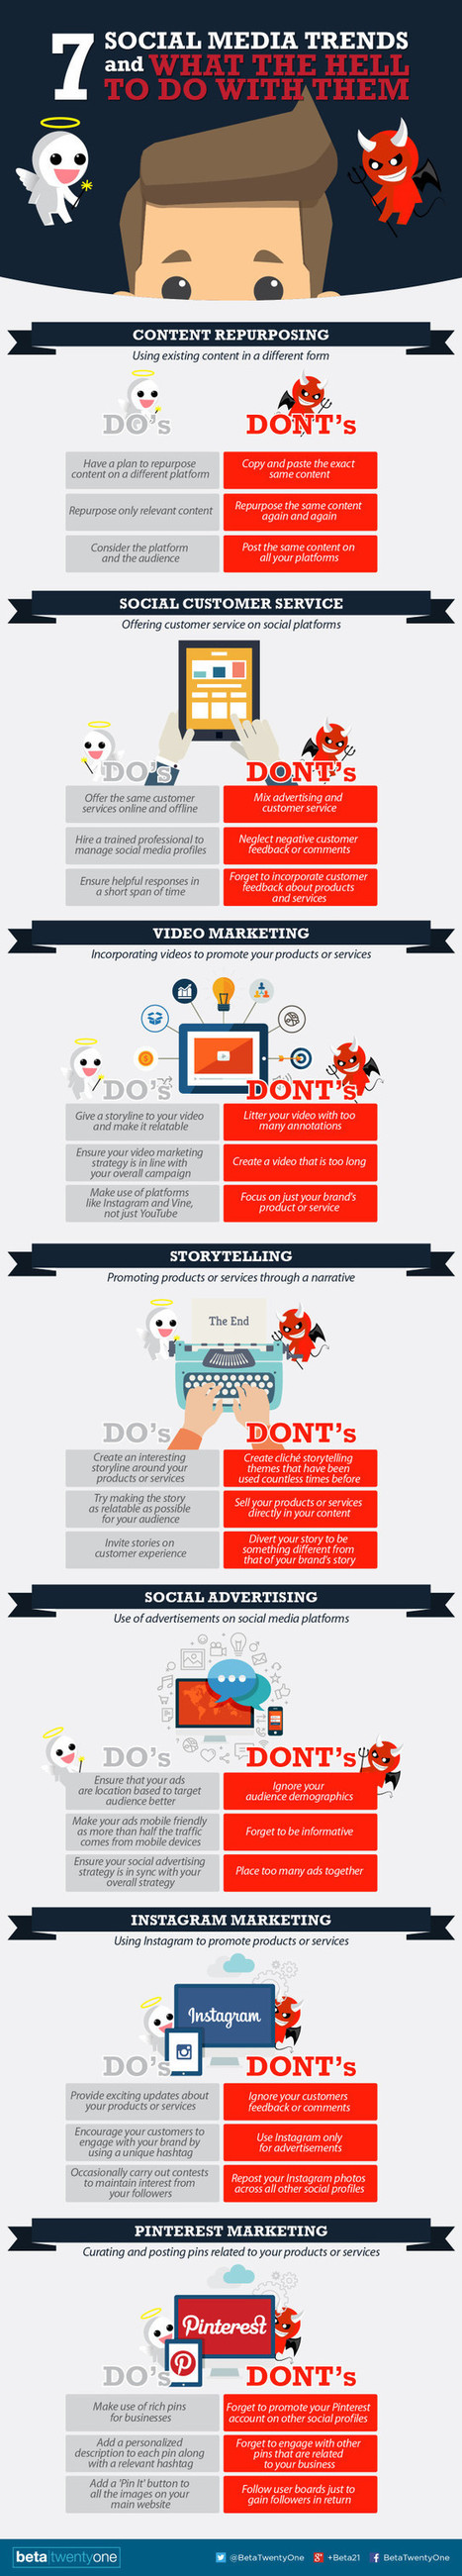 Social Media Trends and Their Do's and Don'ts #infographic | 5 Star Social Media Marketing | Scoop.it